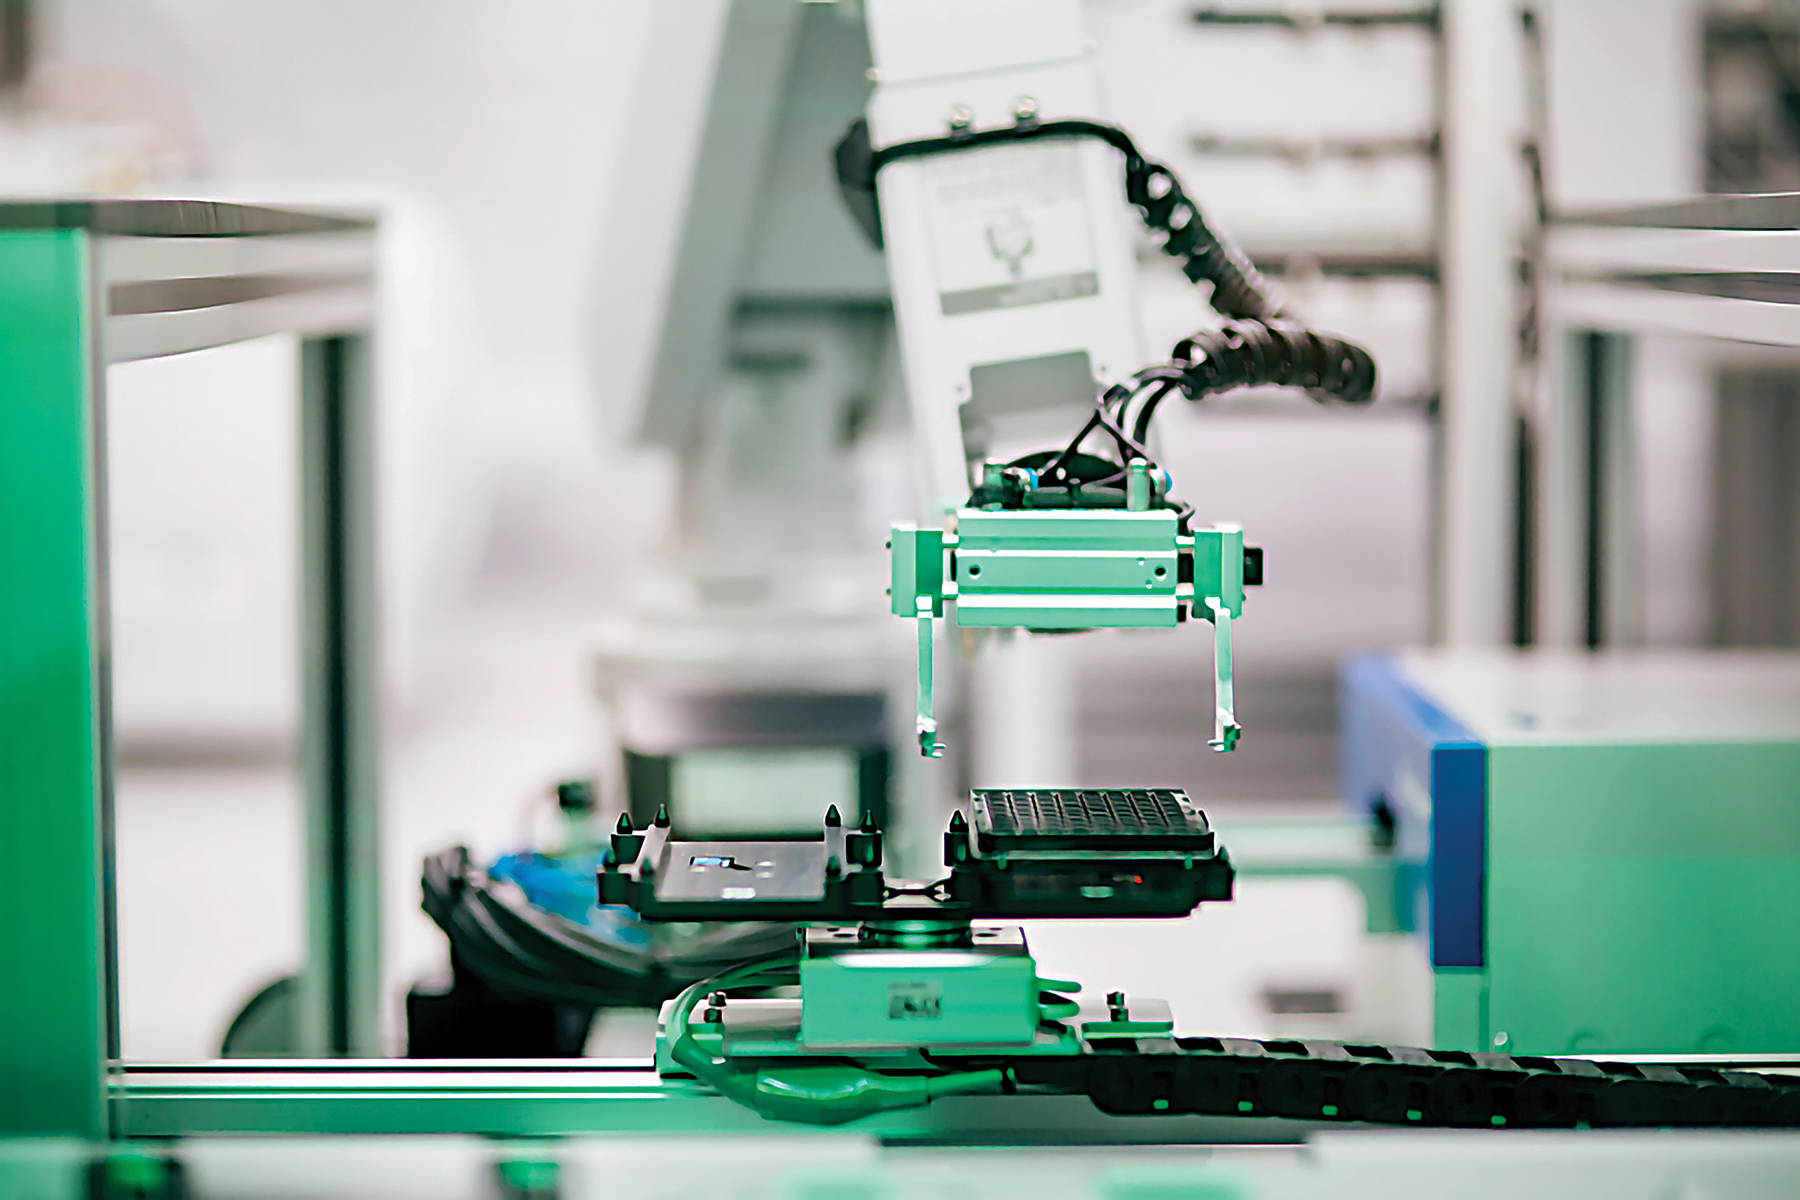 Fully Automated Luxury Drug Discovery